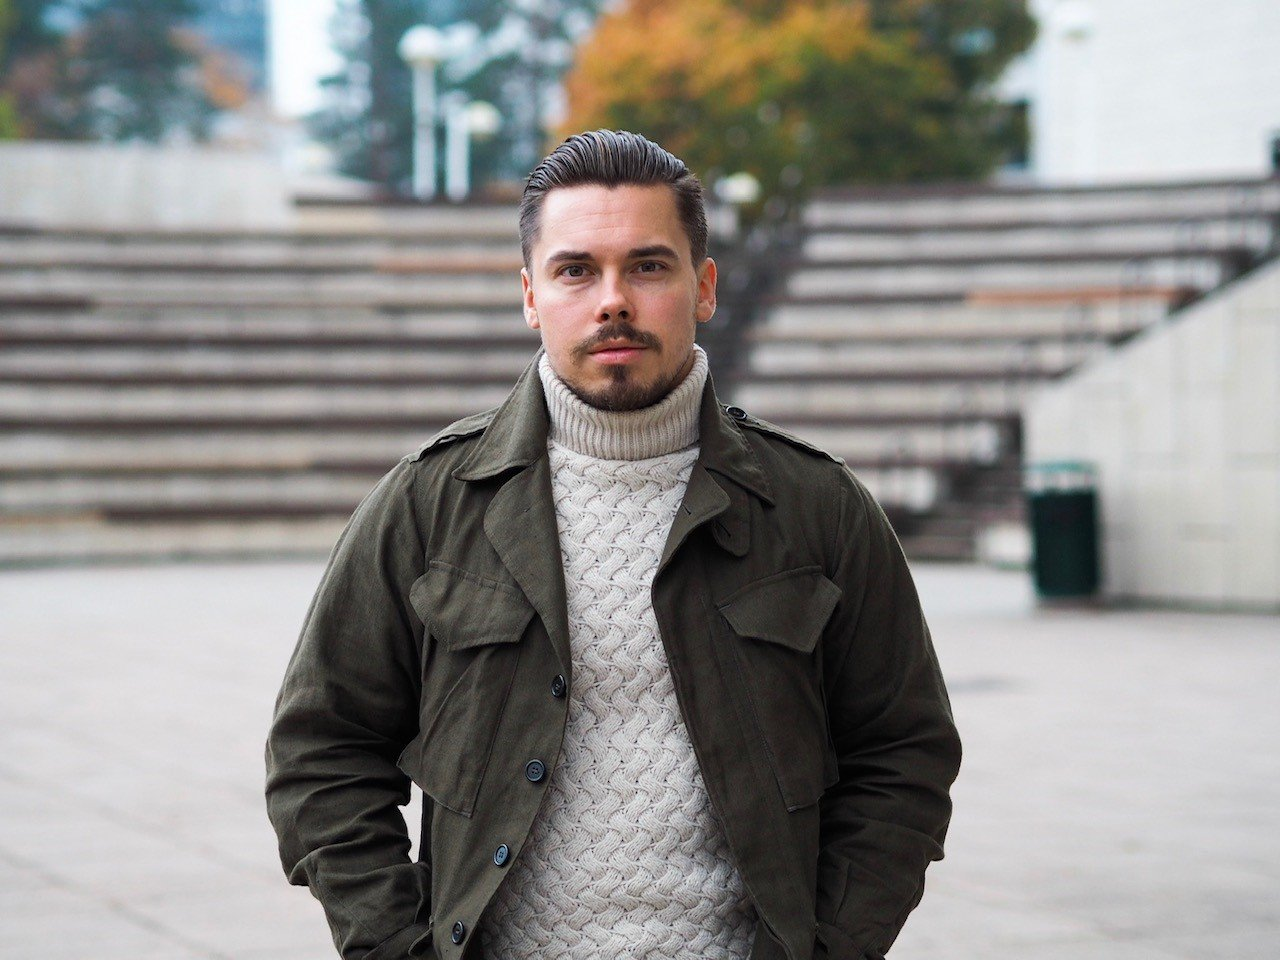 Outfit of the week - field jacket with a roll neck sweater and denim